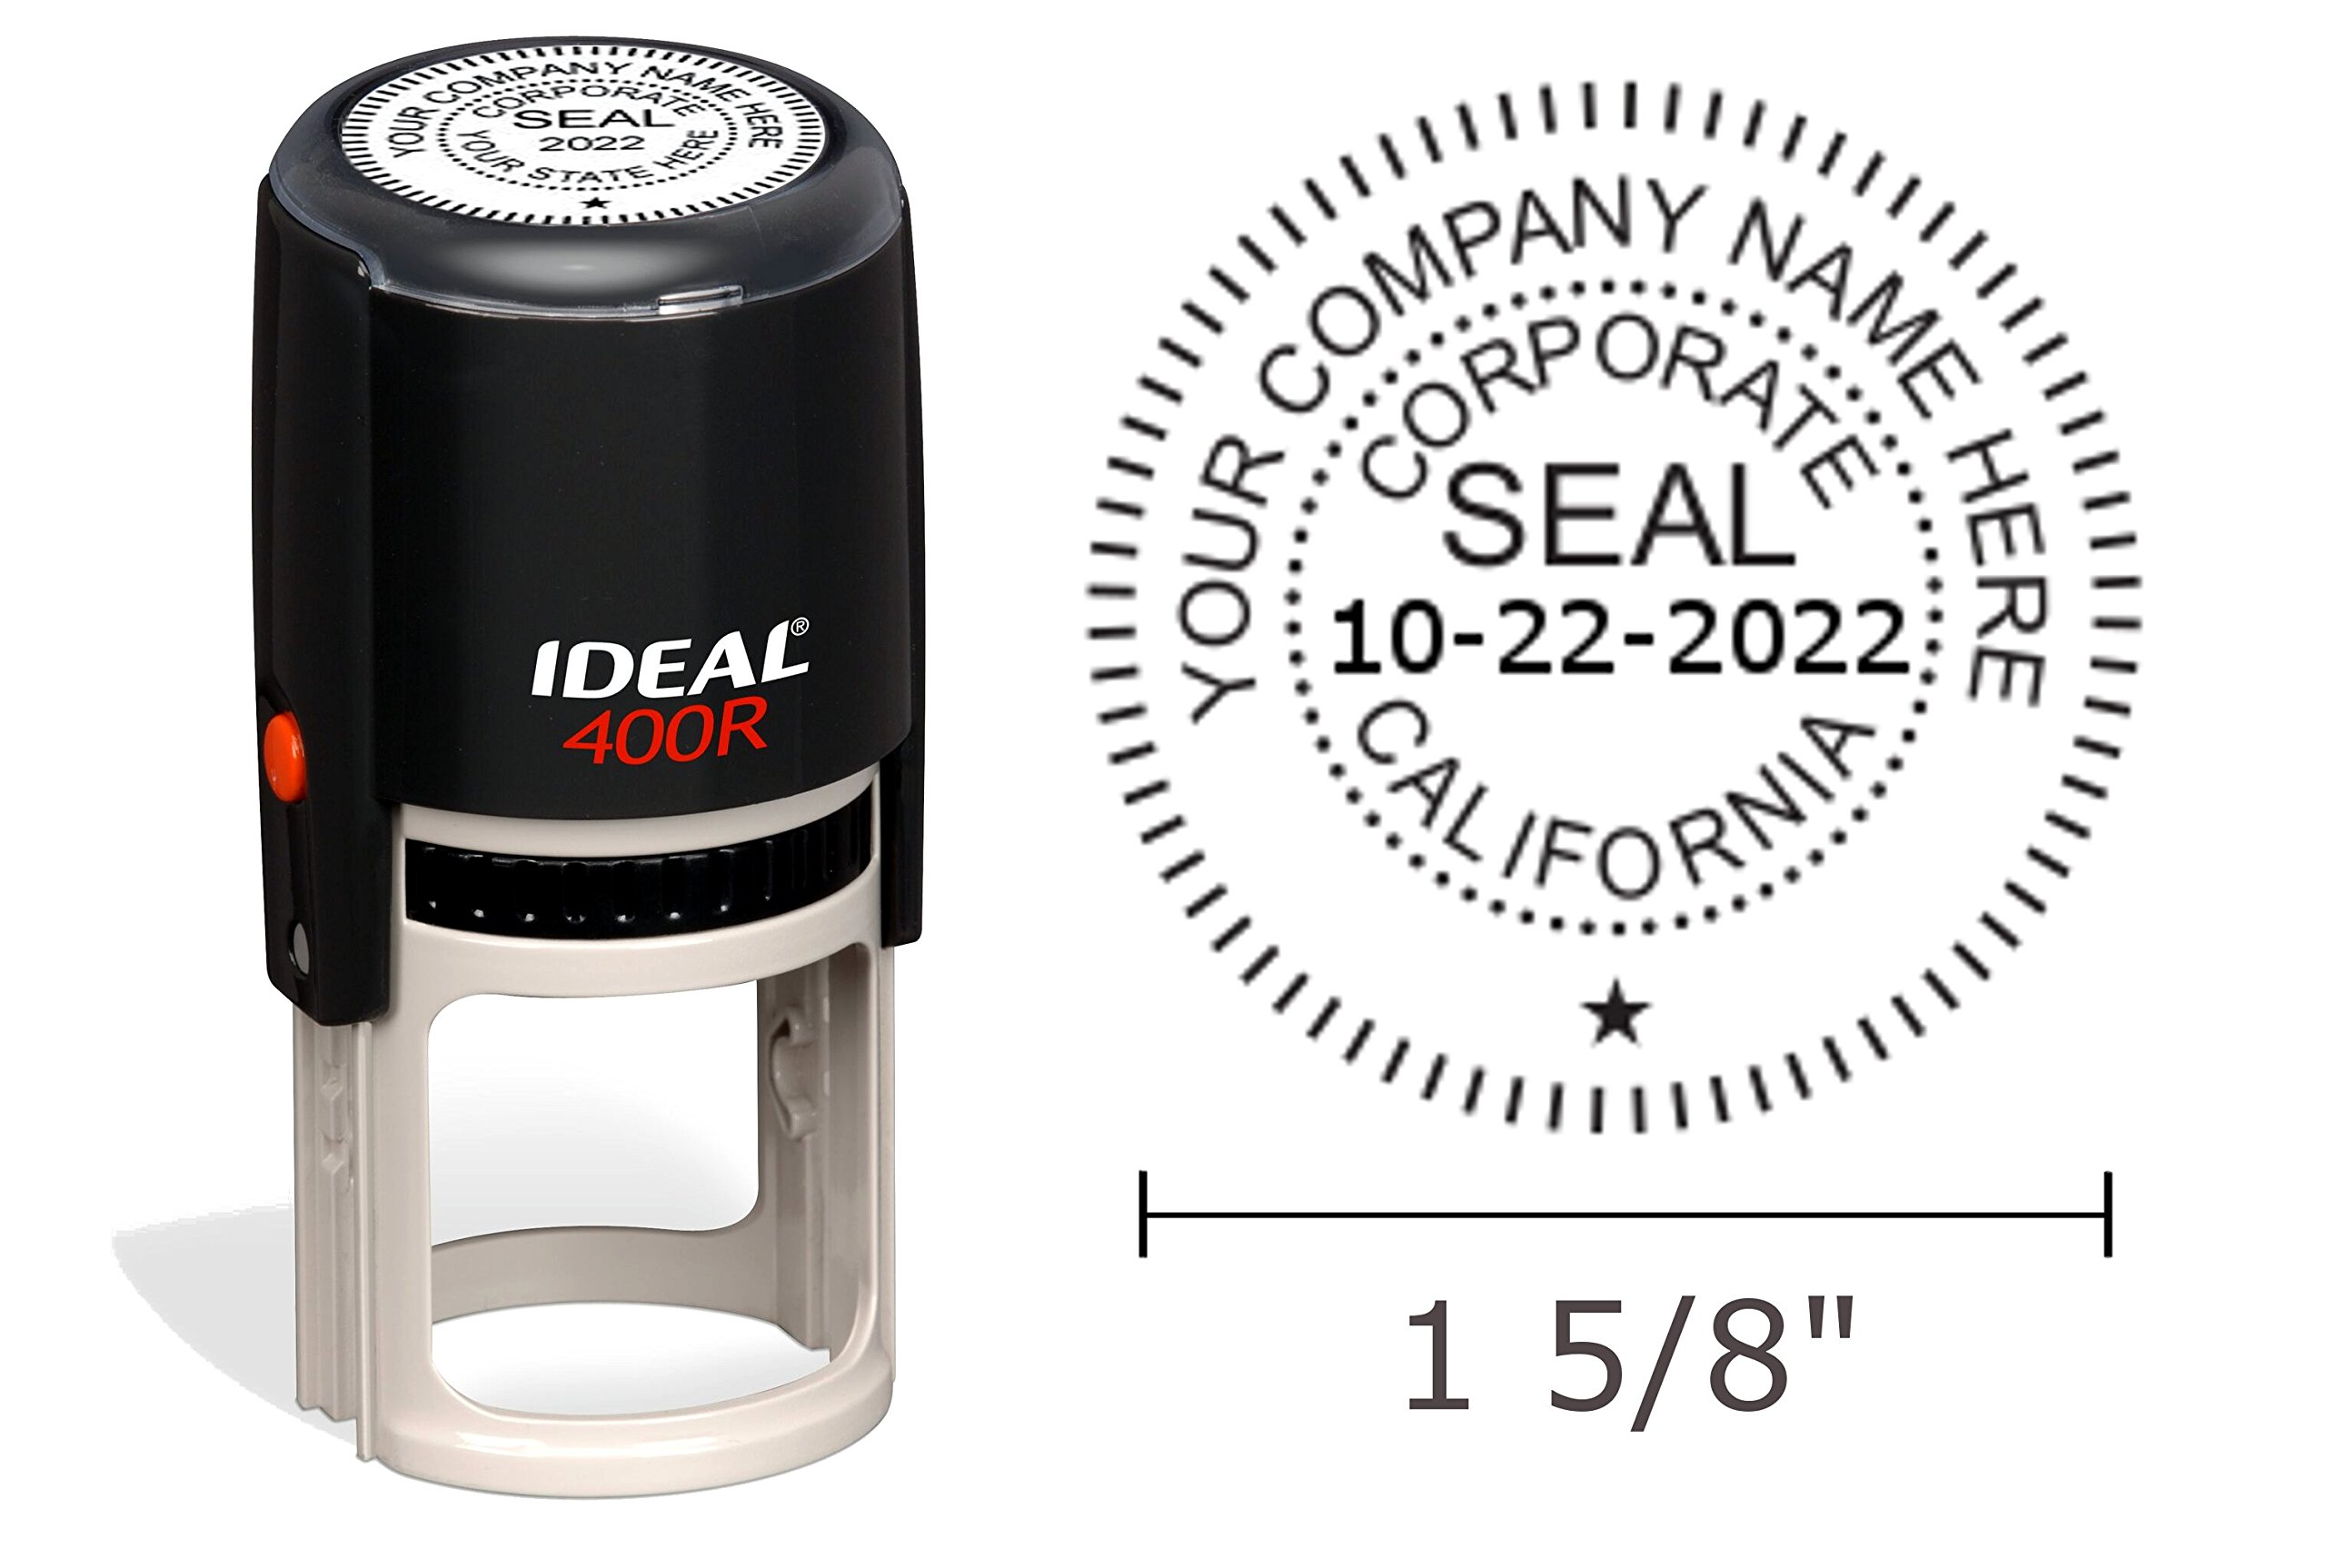 California Corporate Seal Stamp, Ideal 400R, Round 1-5/8'' Impression, Black Body